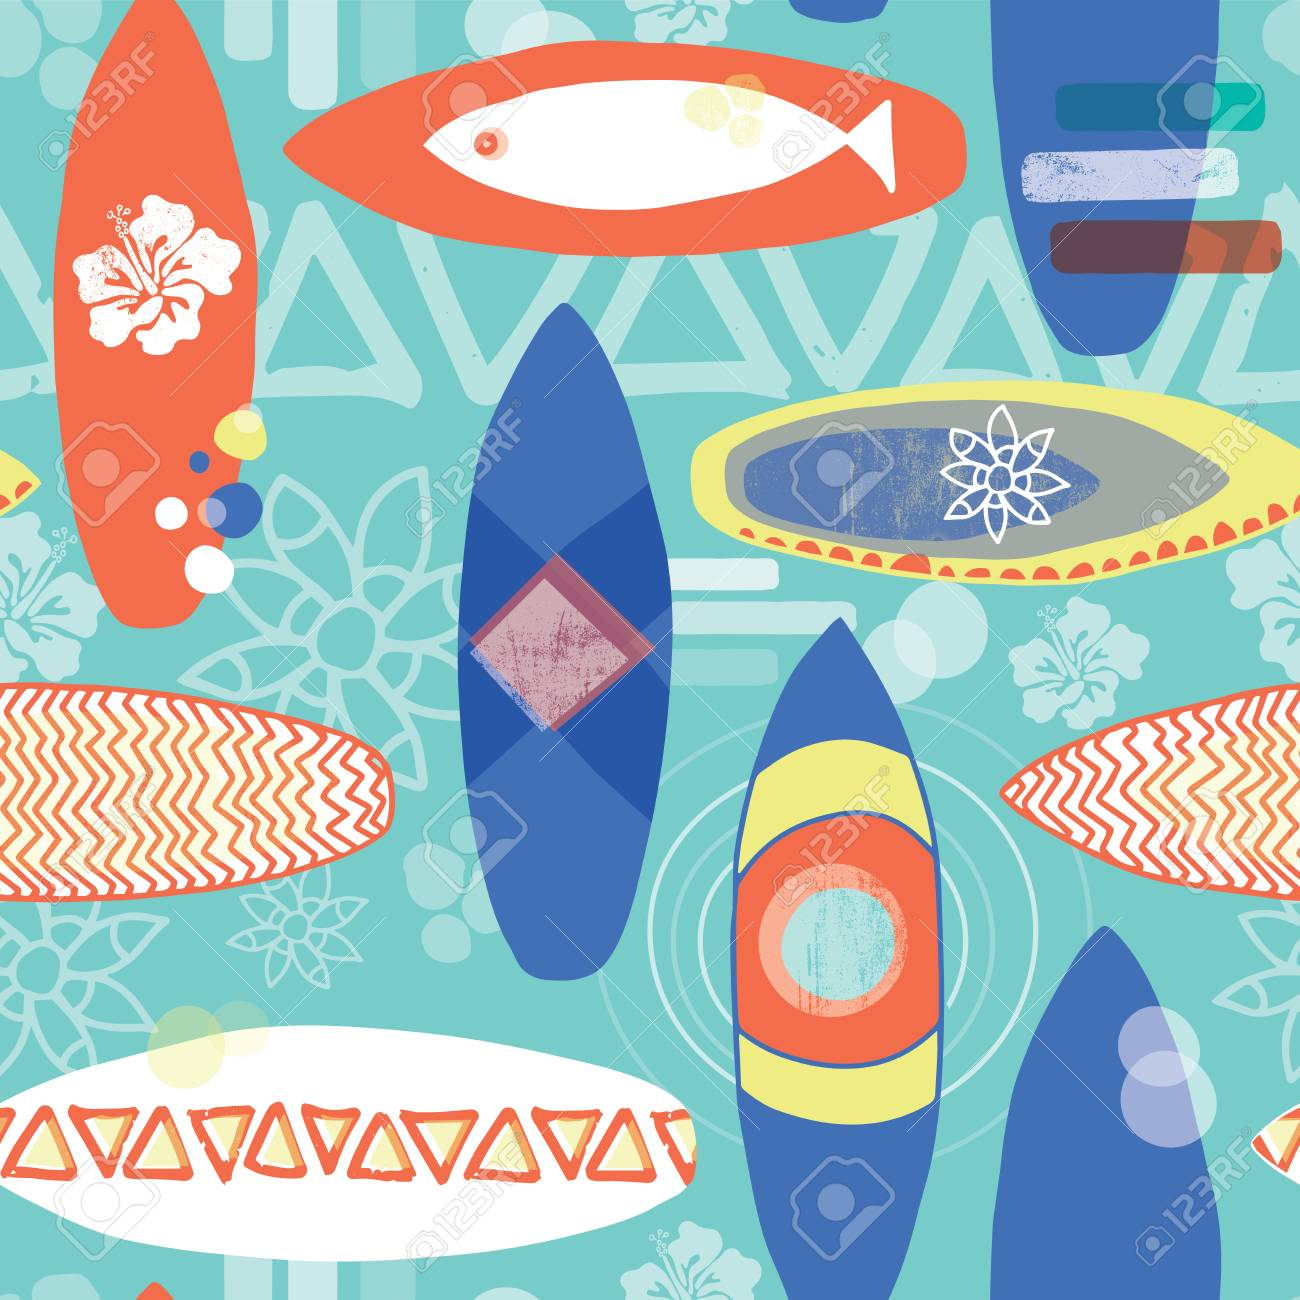 Retro Inspired Surfboards Seamless Repeat Pattern Orange White